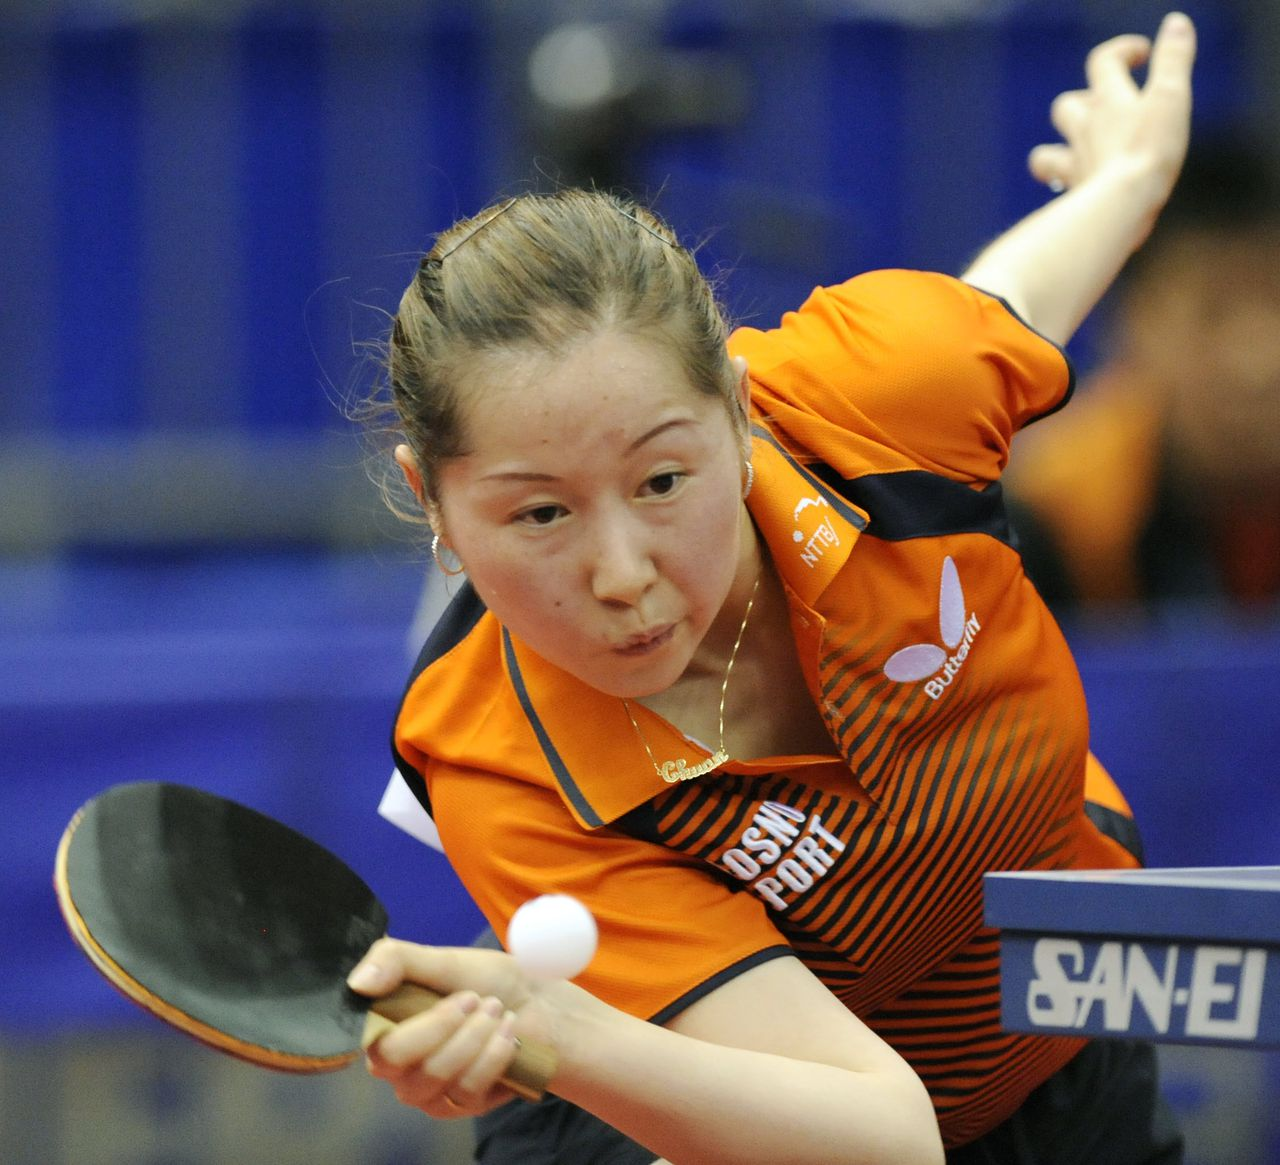 "Li Jie vorige week in actie op de wereldkampioenschappen in Yokohama. ""Ze is nog jong en zal alleen maar beter worden."" (Foto AFP) Li Jie of the Netherlands returns the ball against Singaporean Feng Tianwei during their women's singles third round match in the World Table Tennis Championships in Yokohama on May 1, 2009. AFP PHOTO/Kazuhiro NOGI"